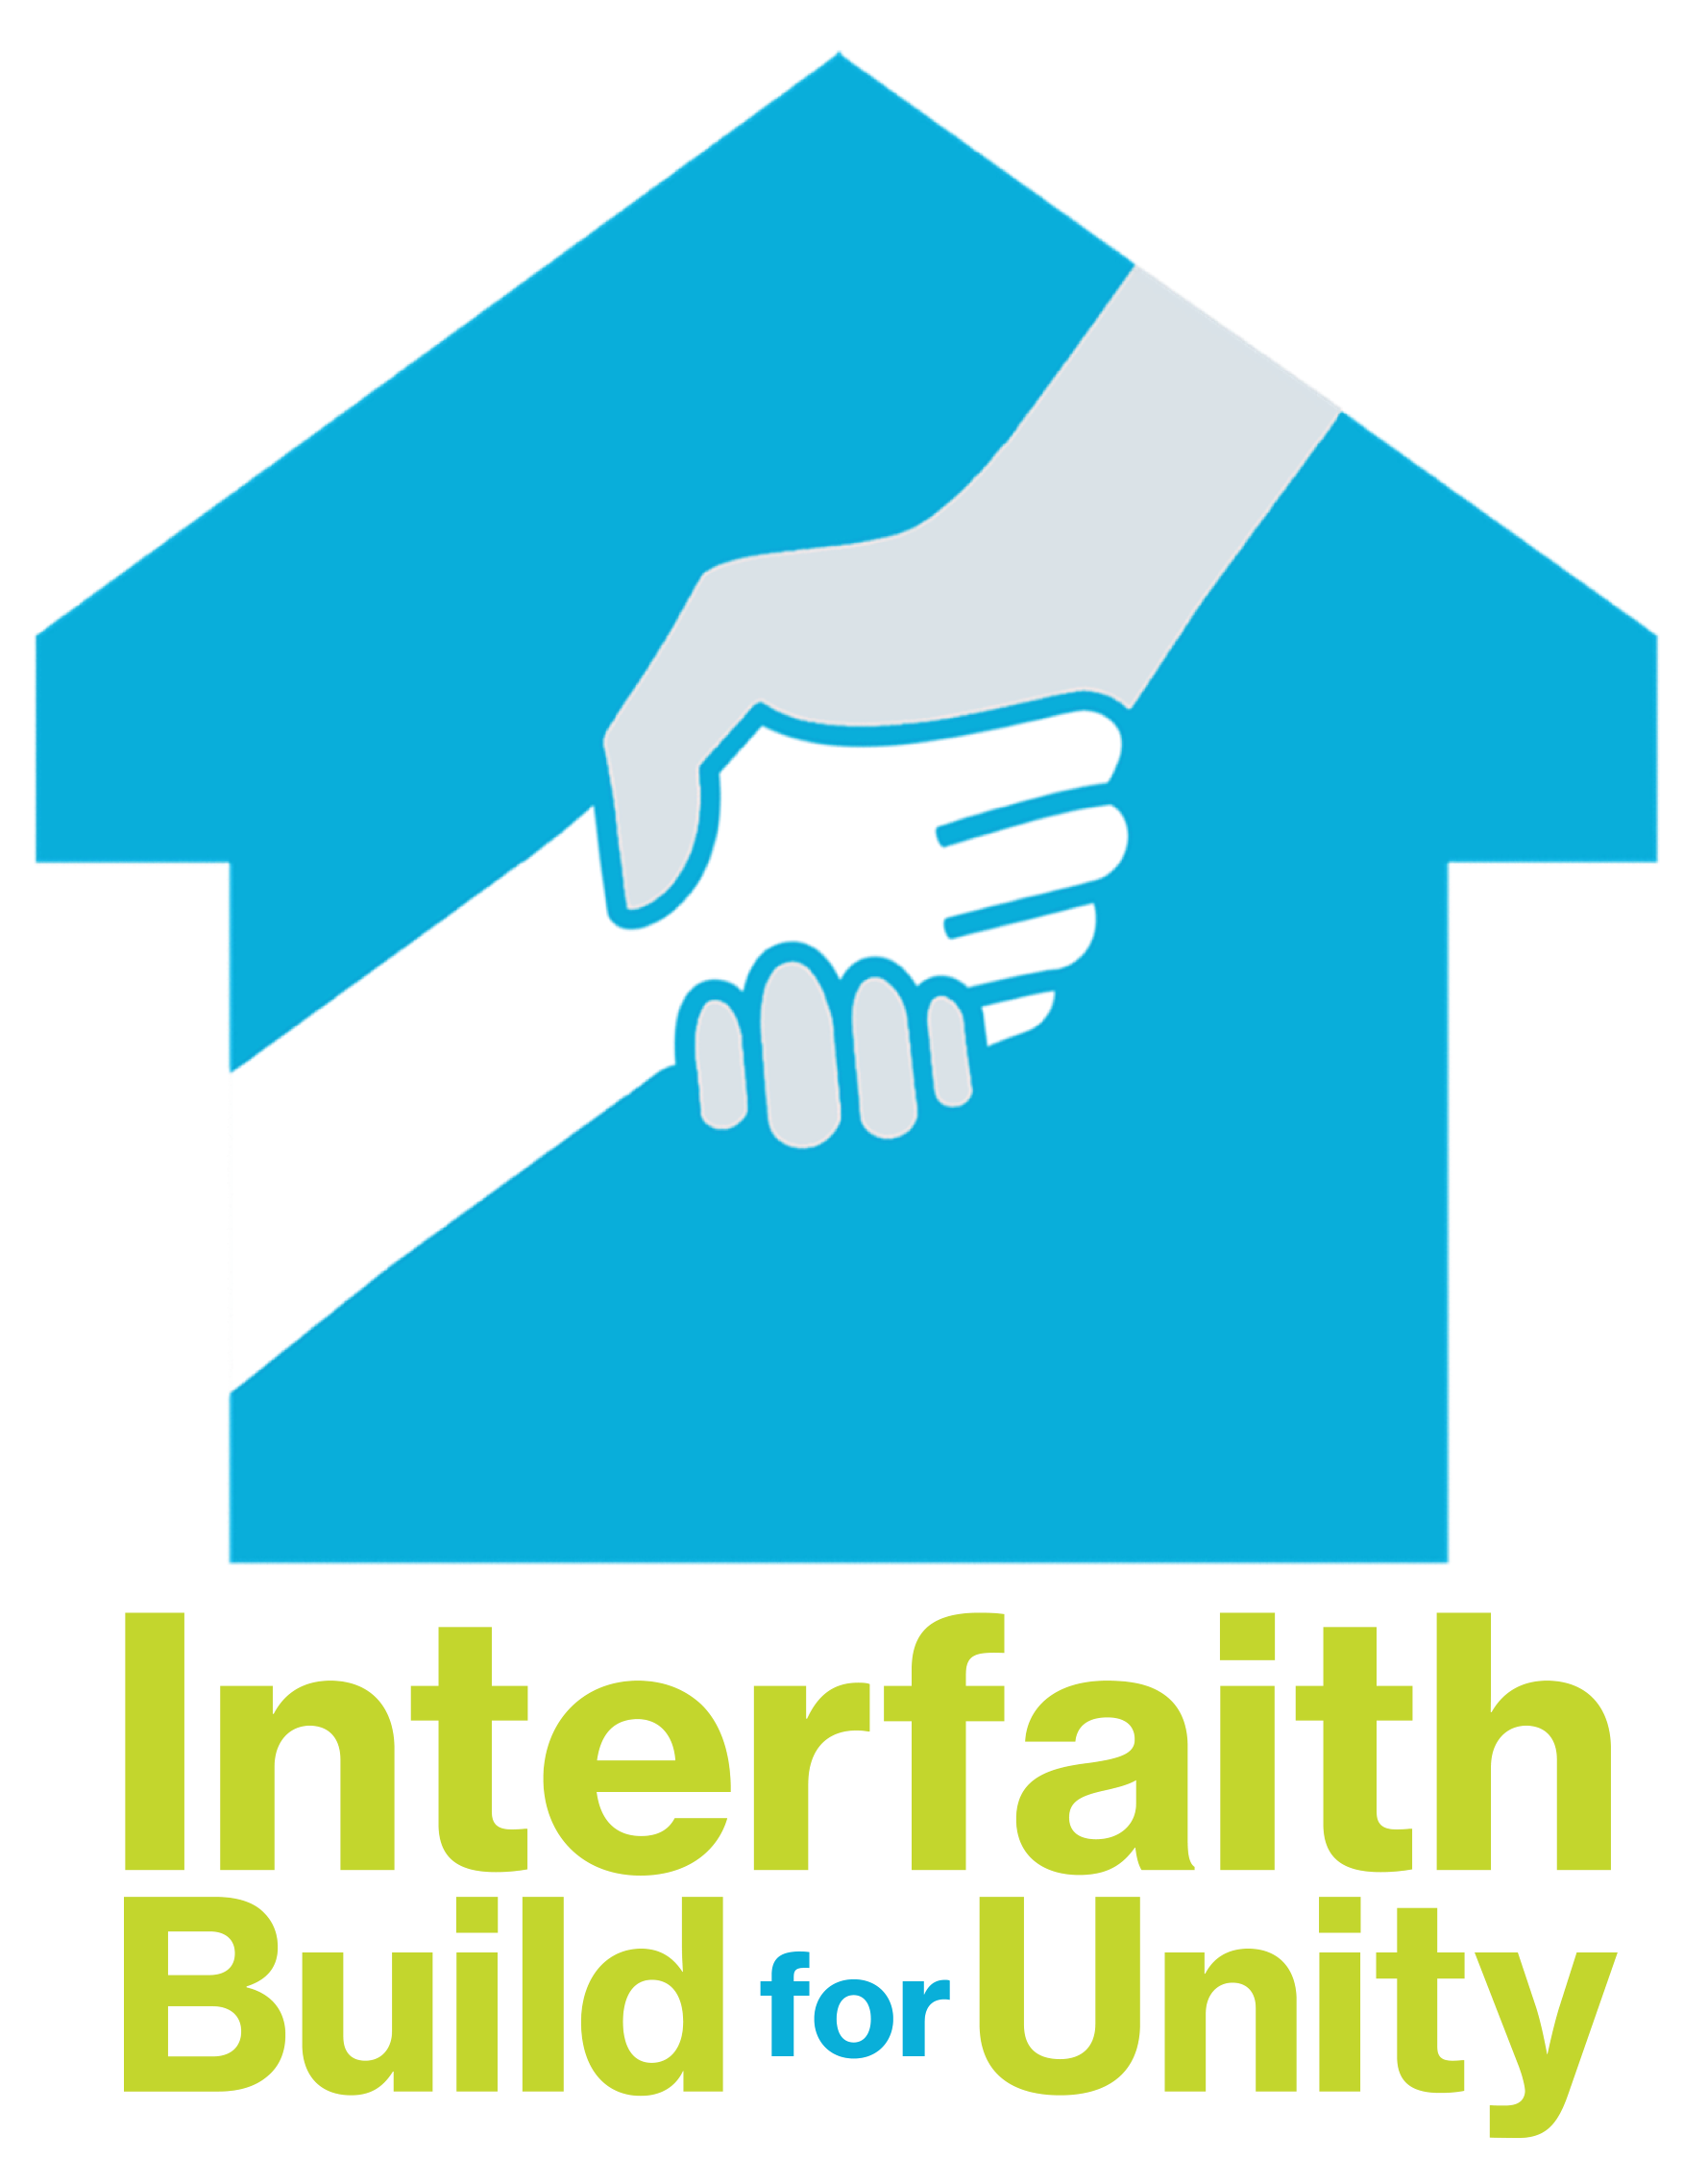 Interfaith Build for Unity Logo (Vertical) 2.0- Resized